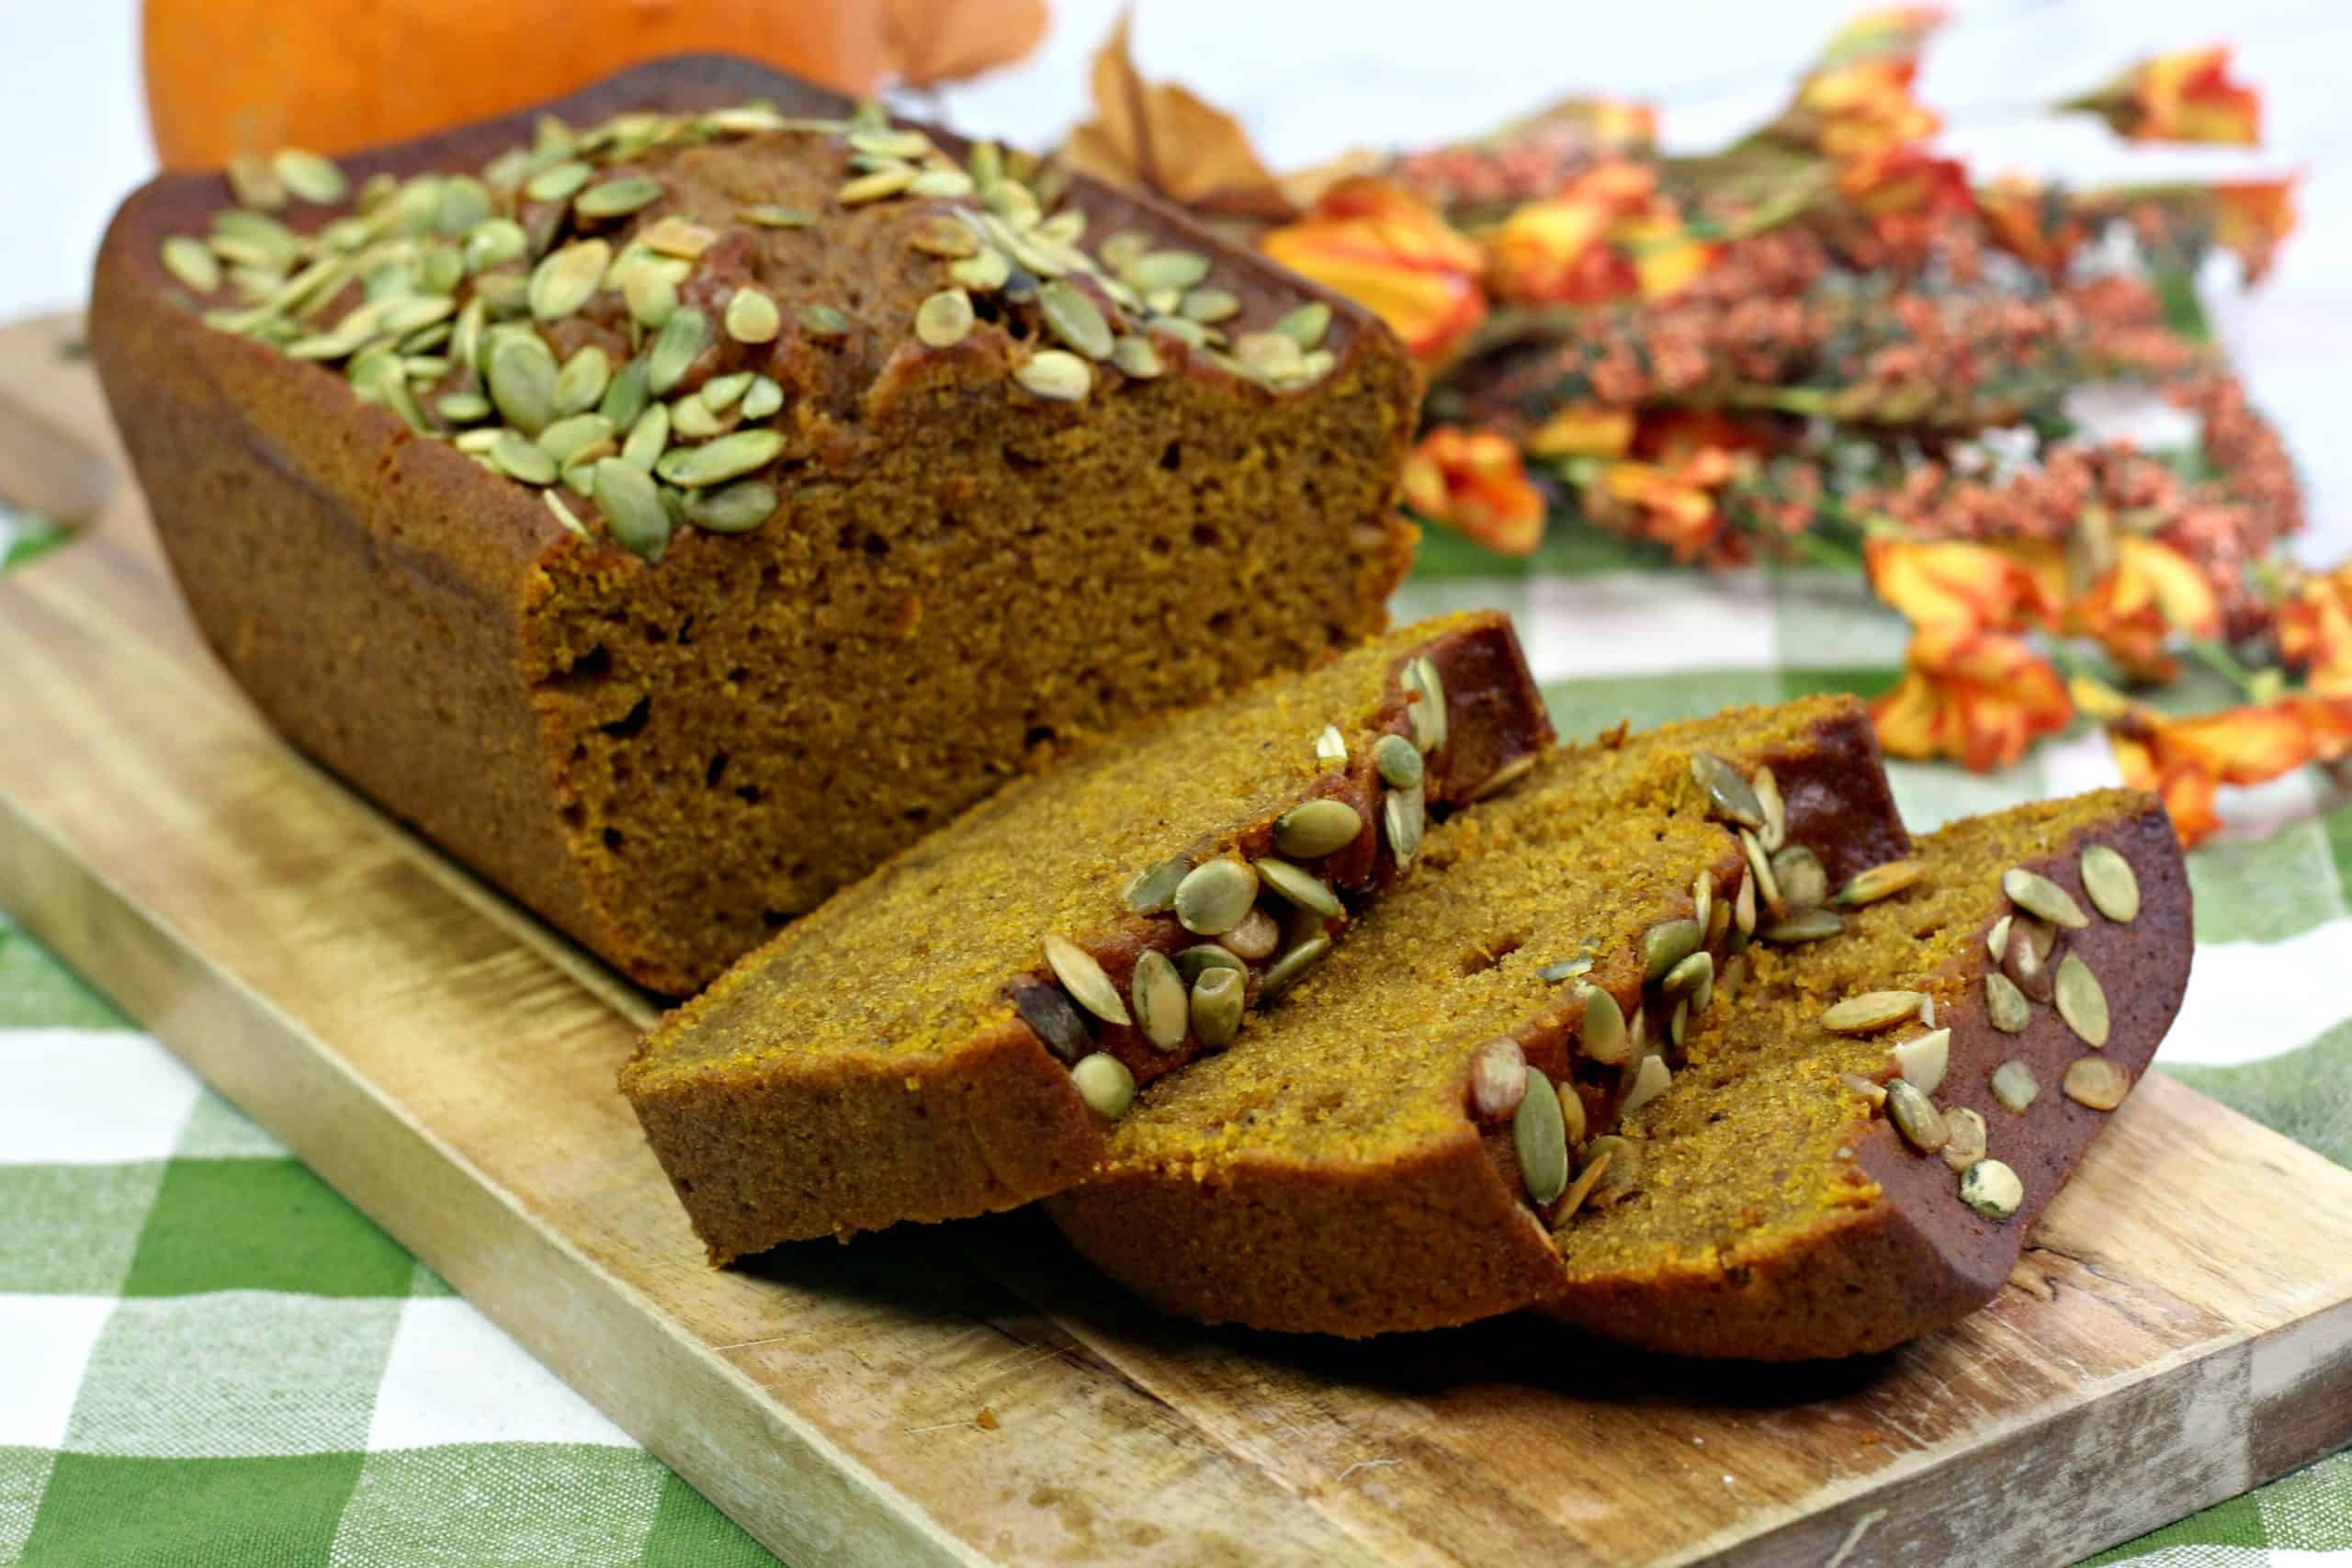 Starbucks Pumpkin Loaf on cutting board